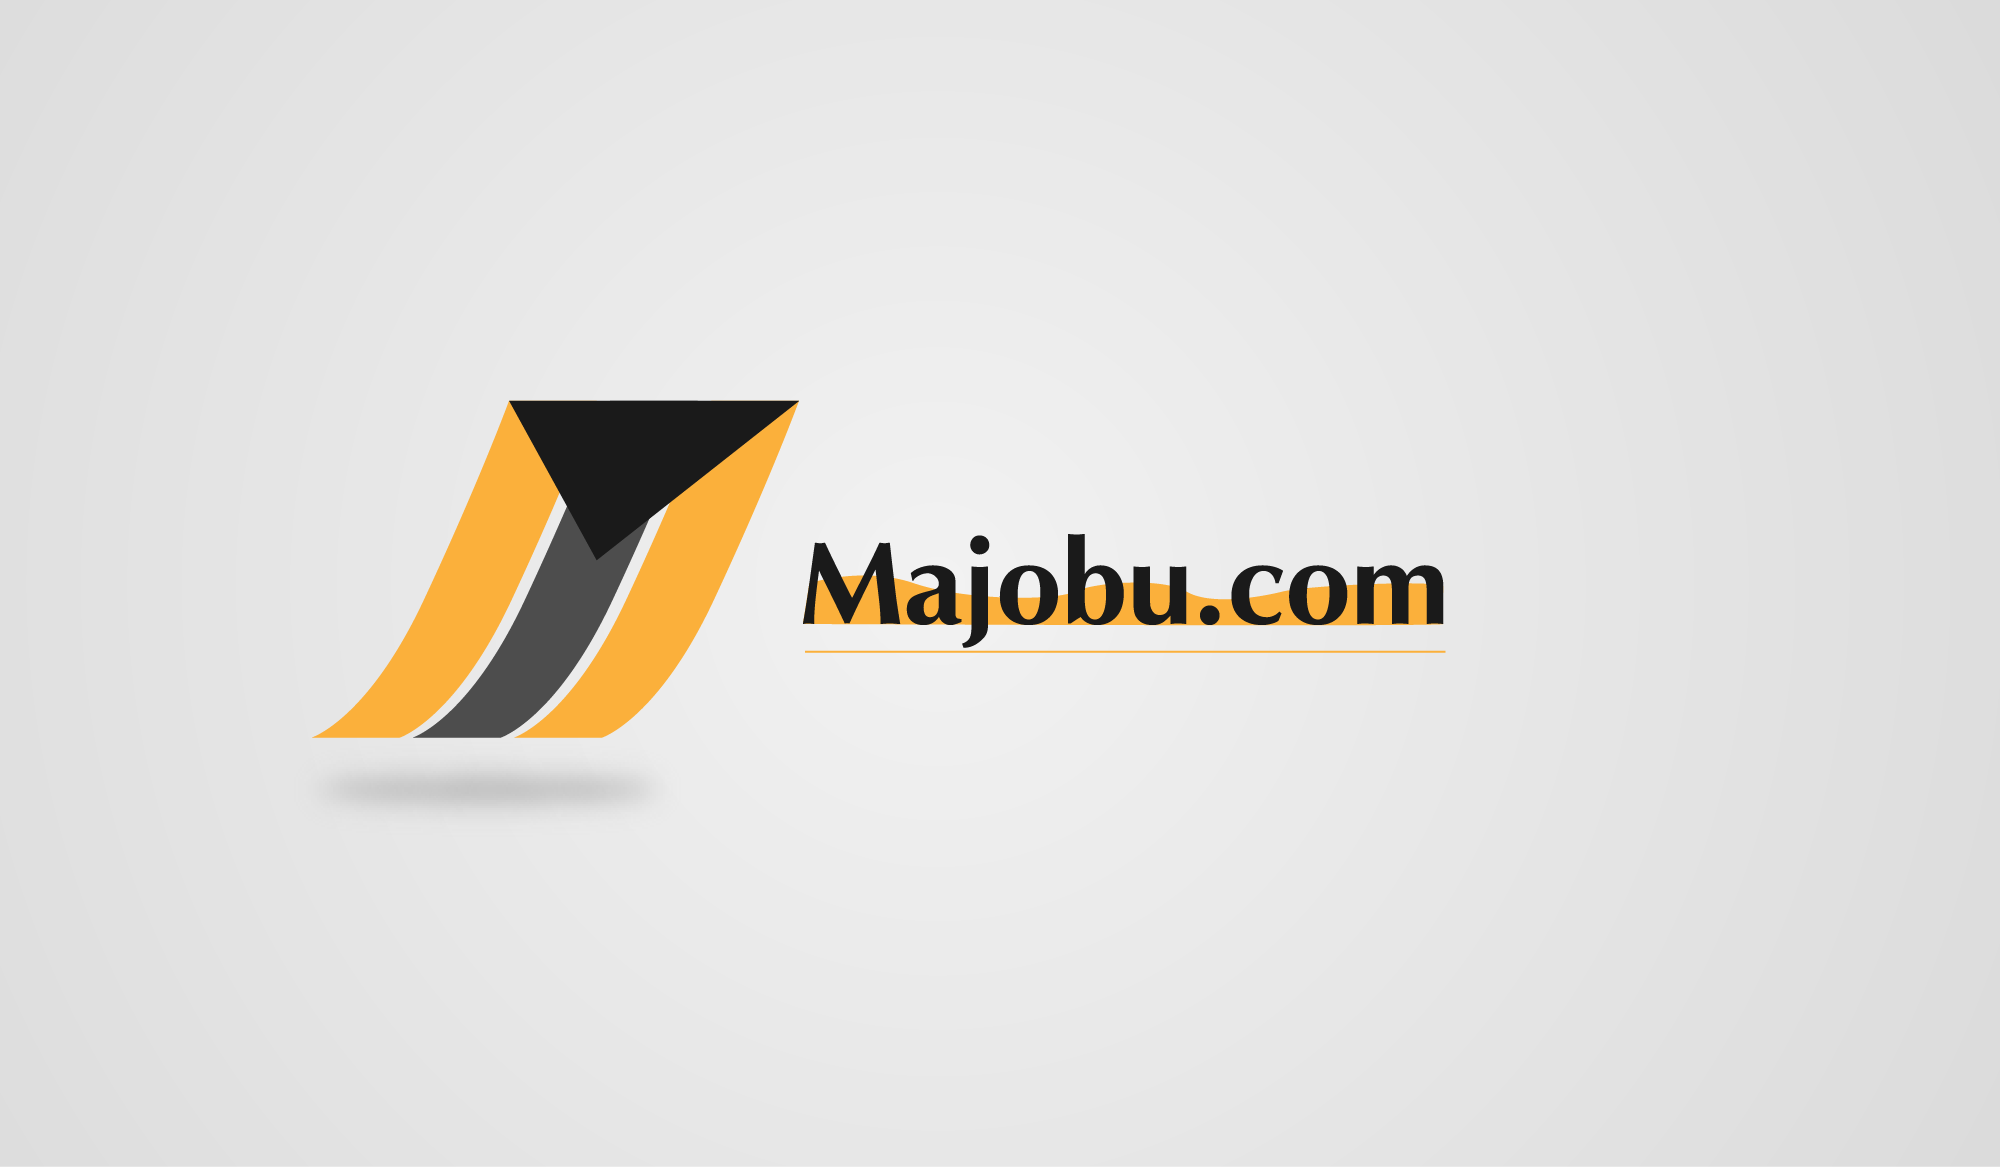 Logo Design by Private User - Entry No. 50 in the Logo Design Contest Inspiring Logo Design for Majobu.